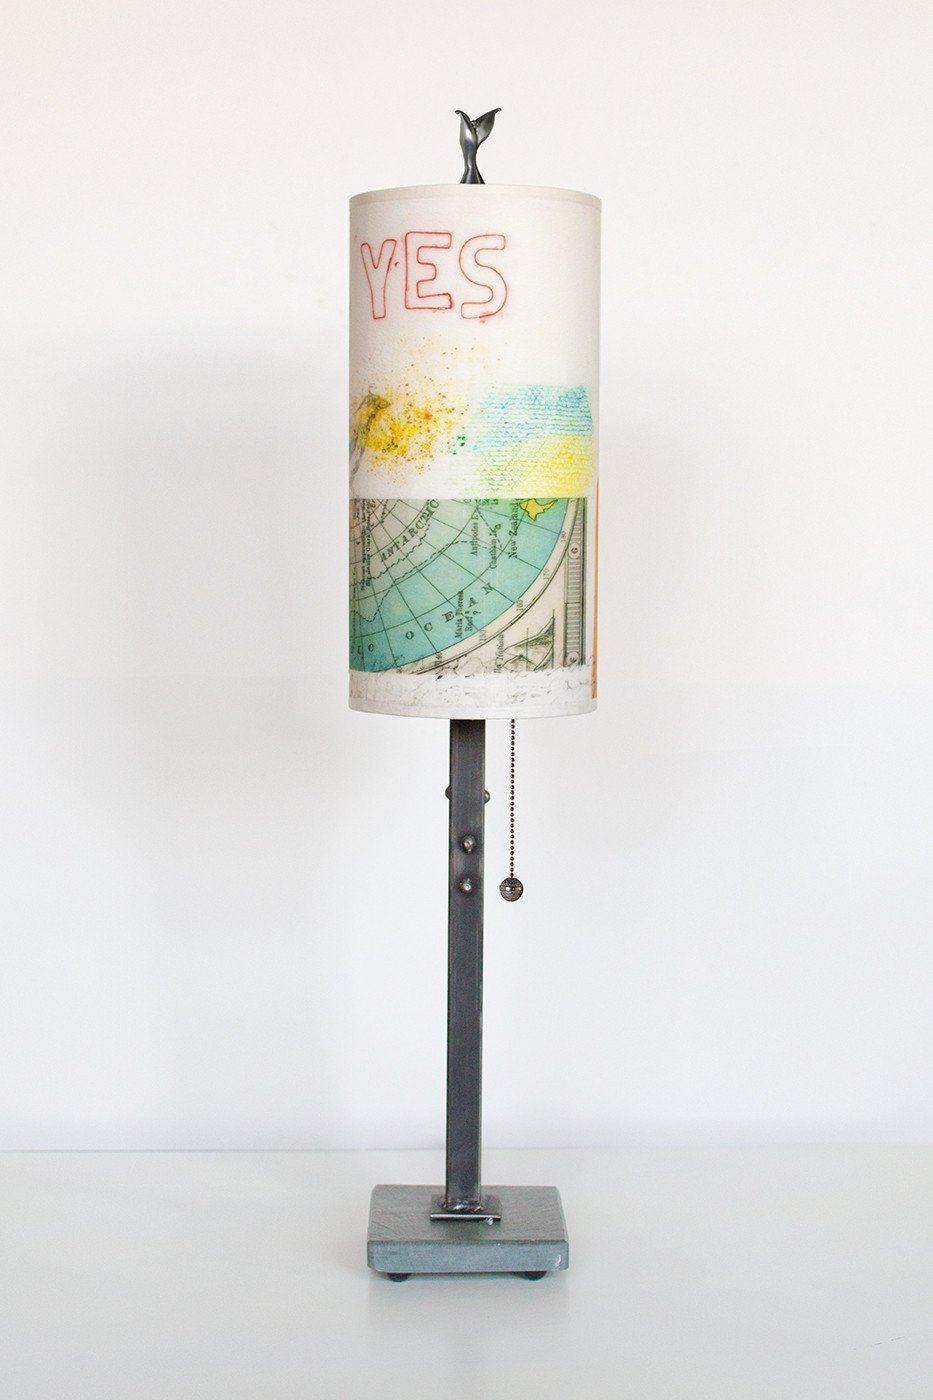 Steel Table Lamp on Italian Marble with Small Tube Shade in Mix